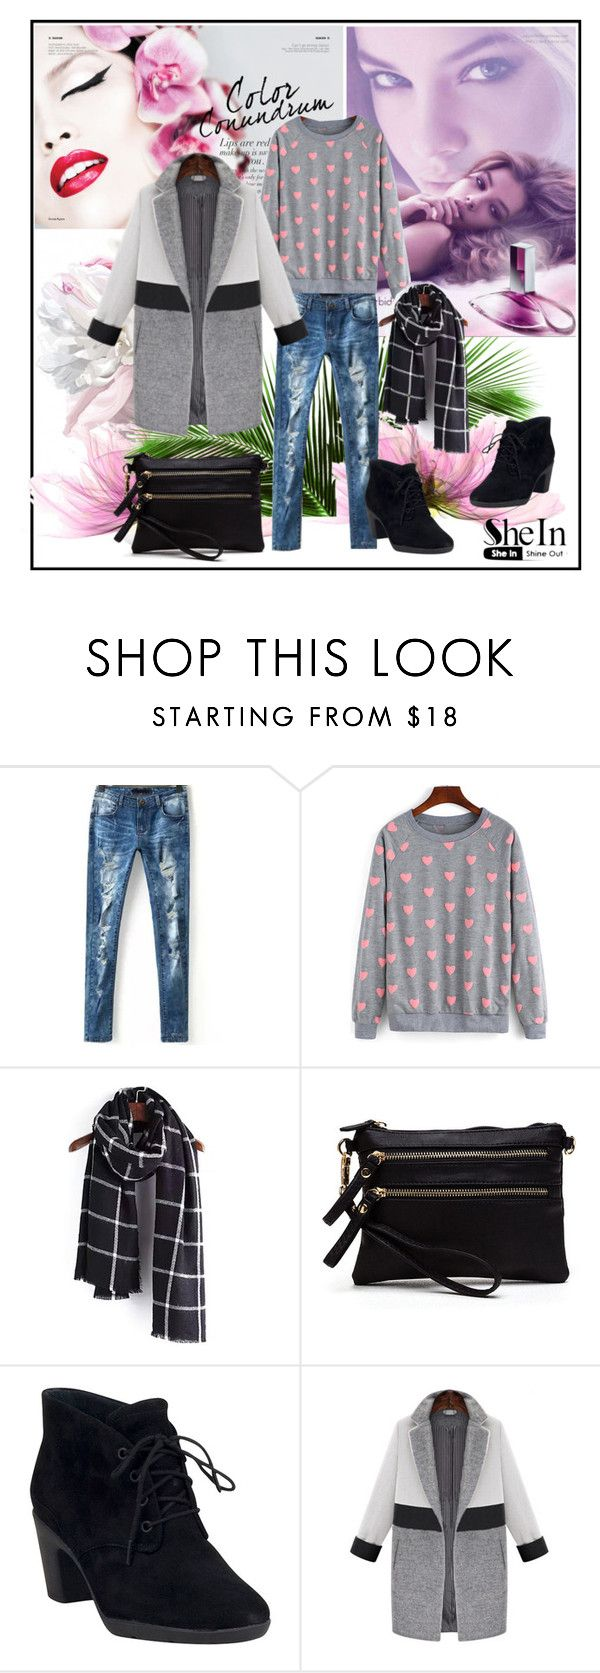 """""""Shein.com 9"""" by fashionb-784 ❤ liked on Polyvore featuring Clarks and shein"""